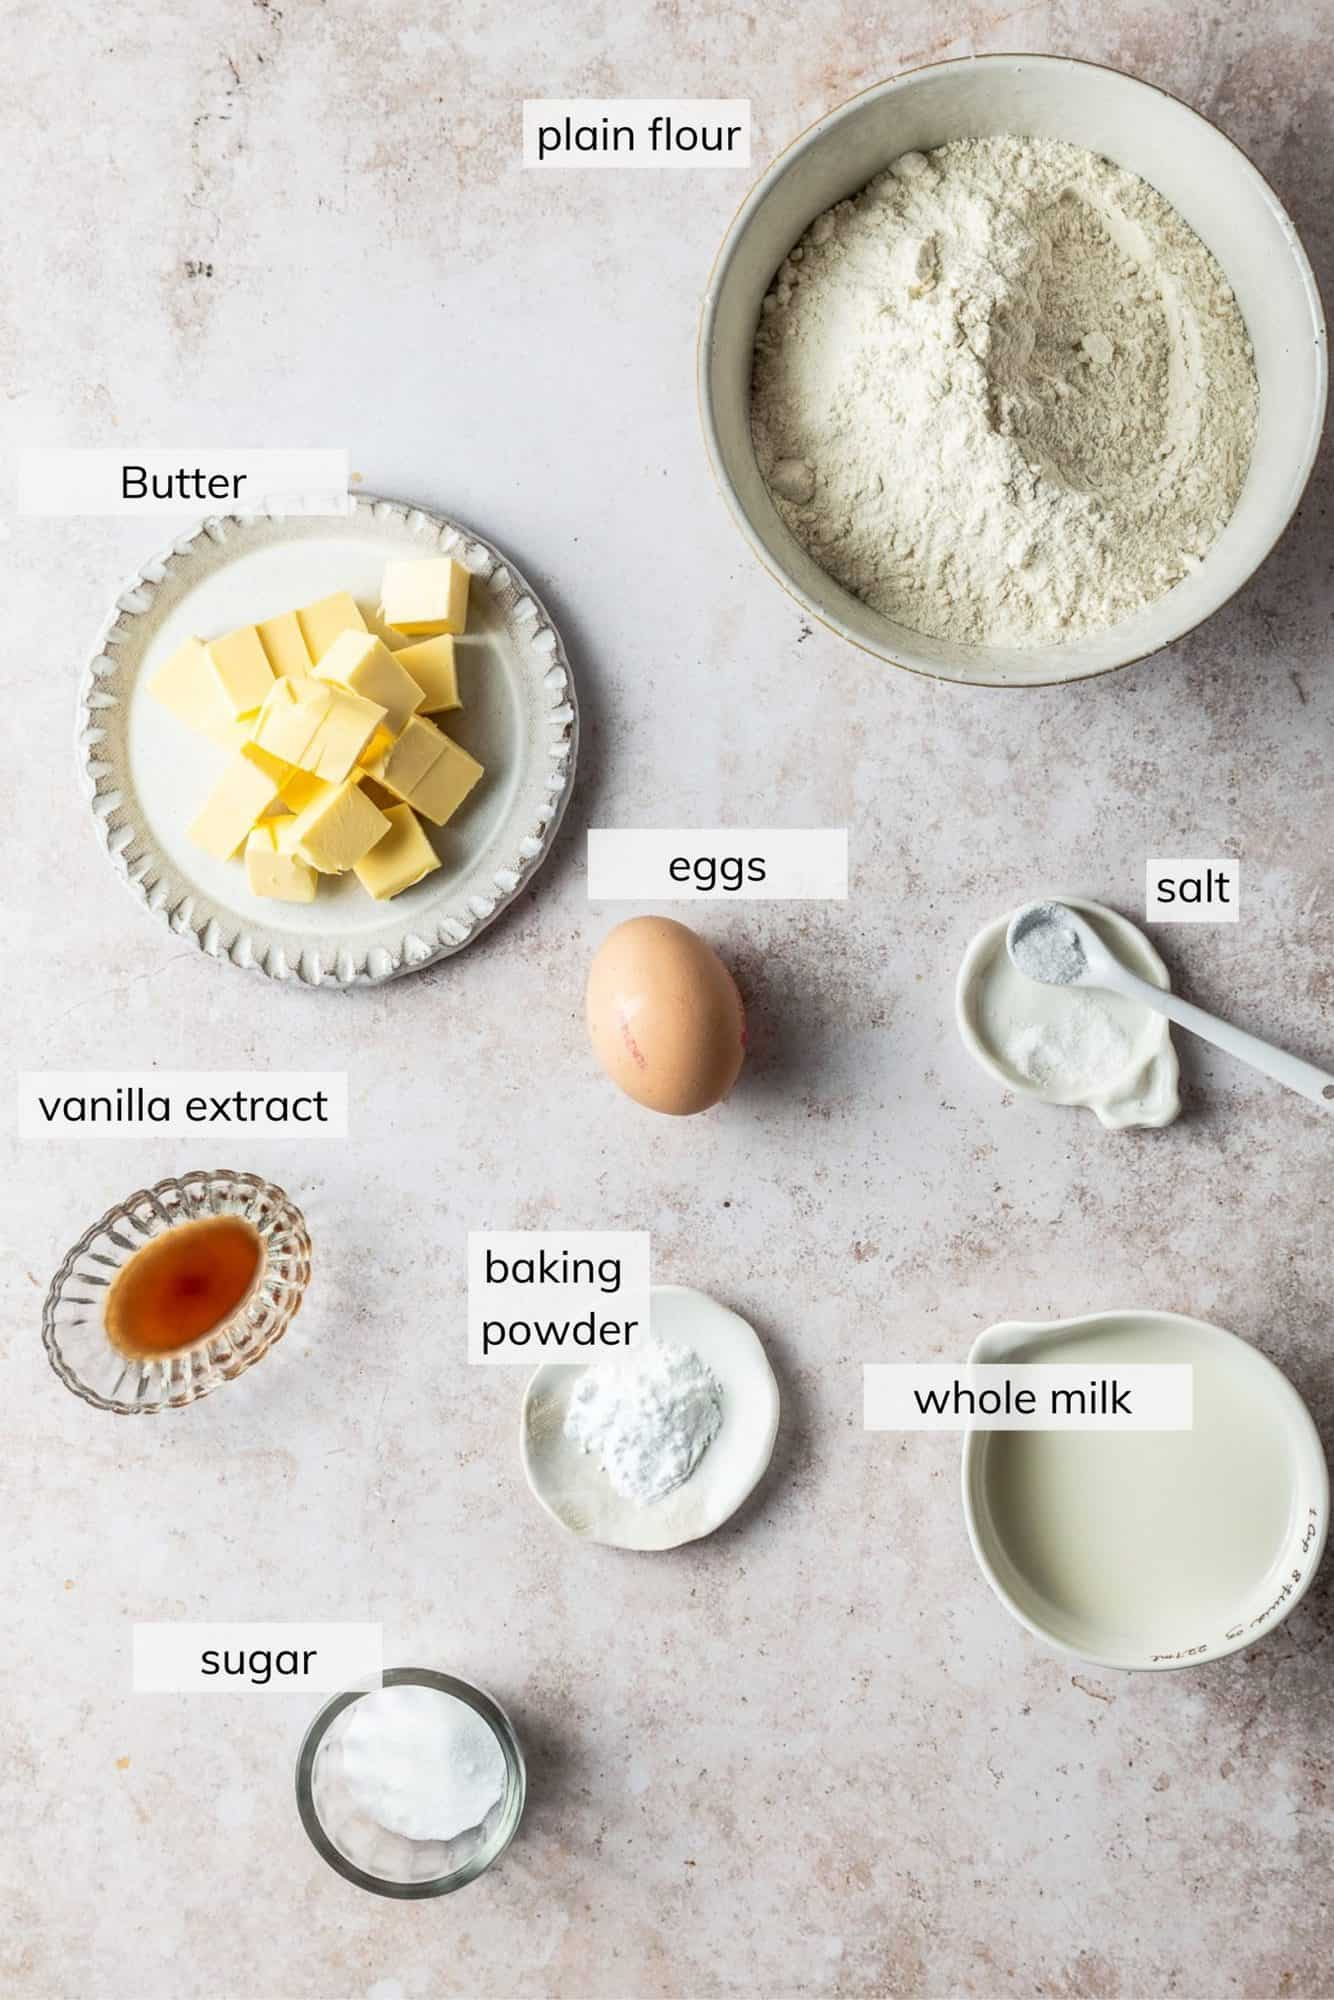 How to make plain scones - ingredients needed in bowls on a work surface